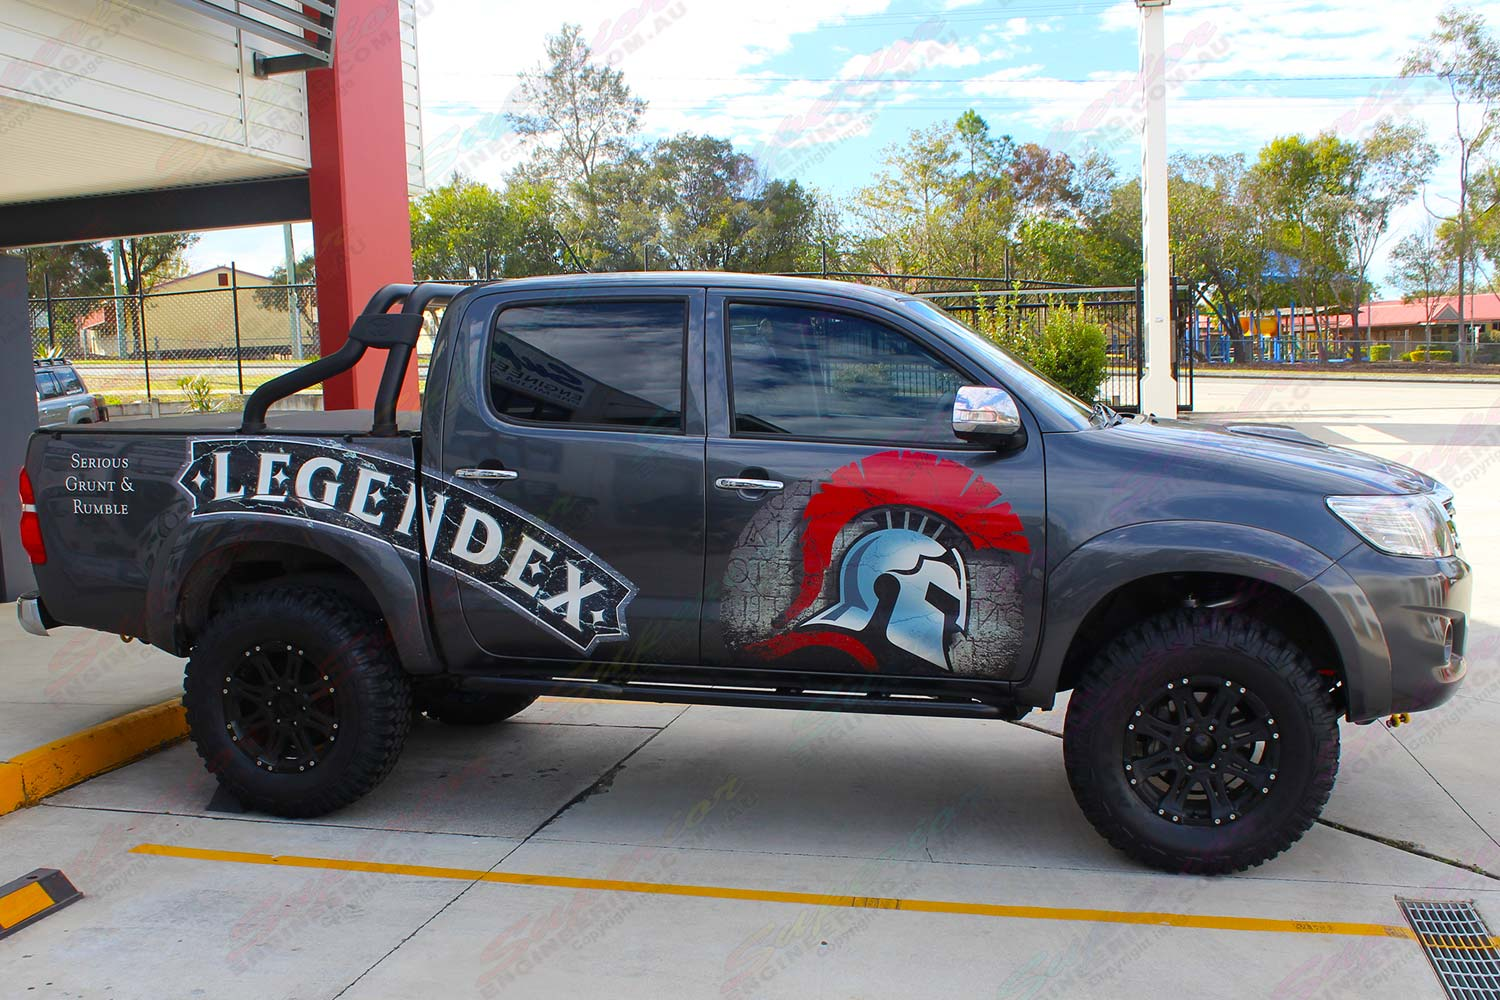 Right side view of the Legendex dual cab Toyota Hilux (Vigo) fitted with a premium Superior nitro gas lift kit and Maxxis Bighorn tyres